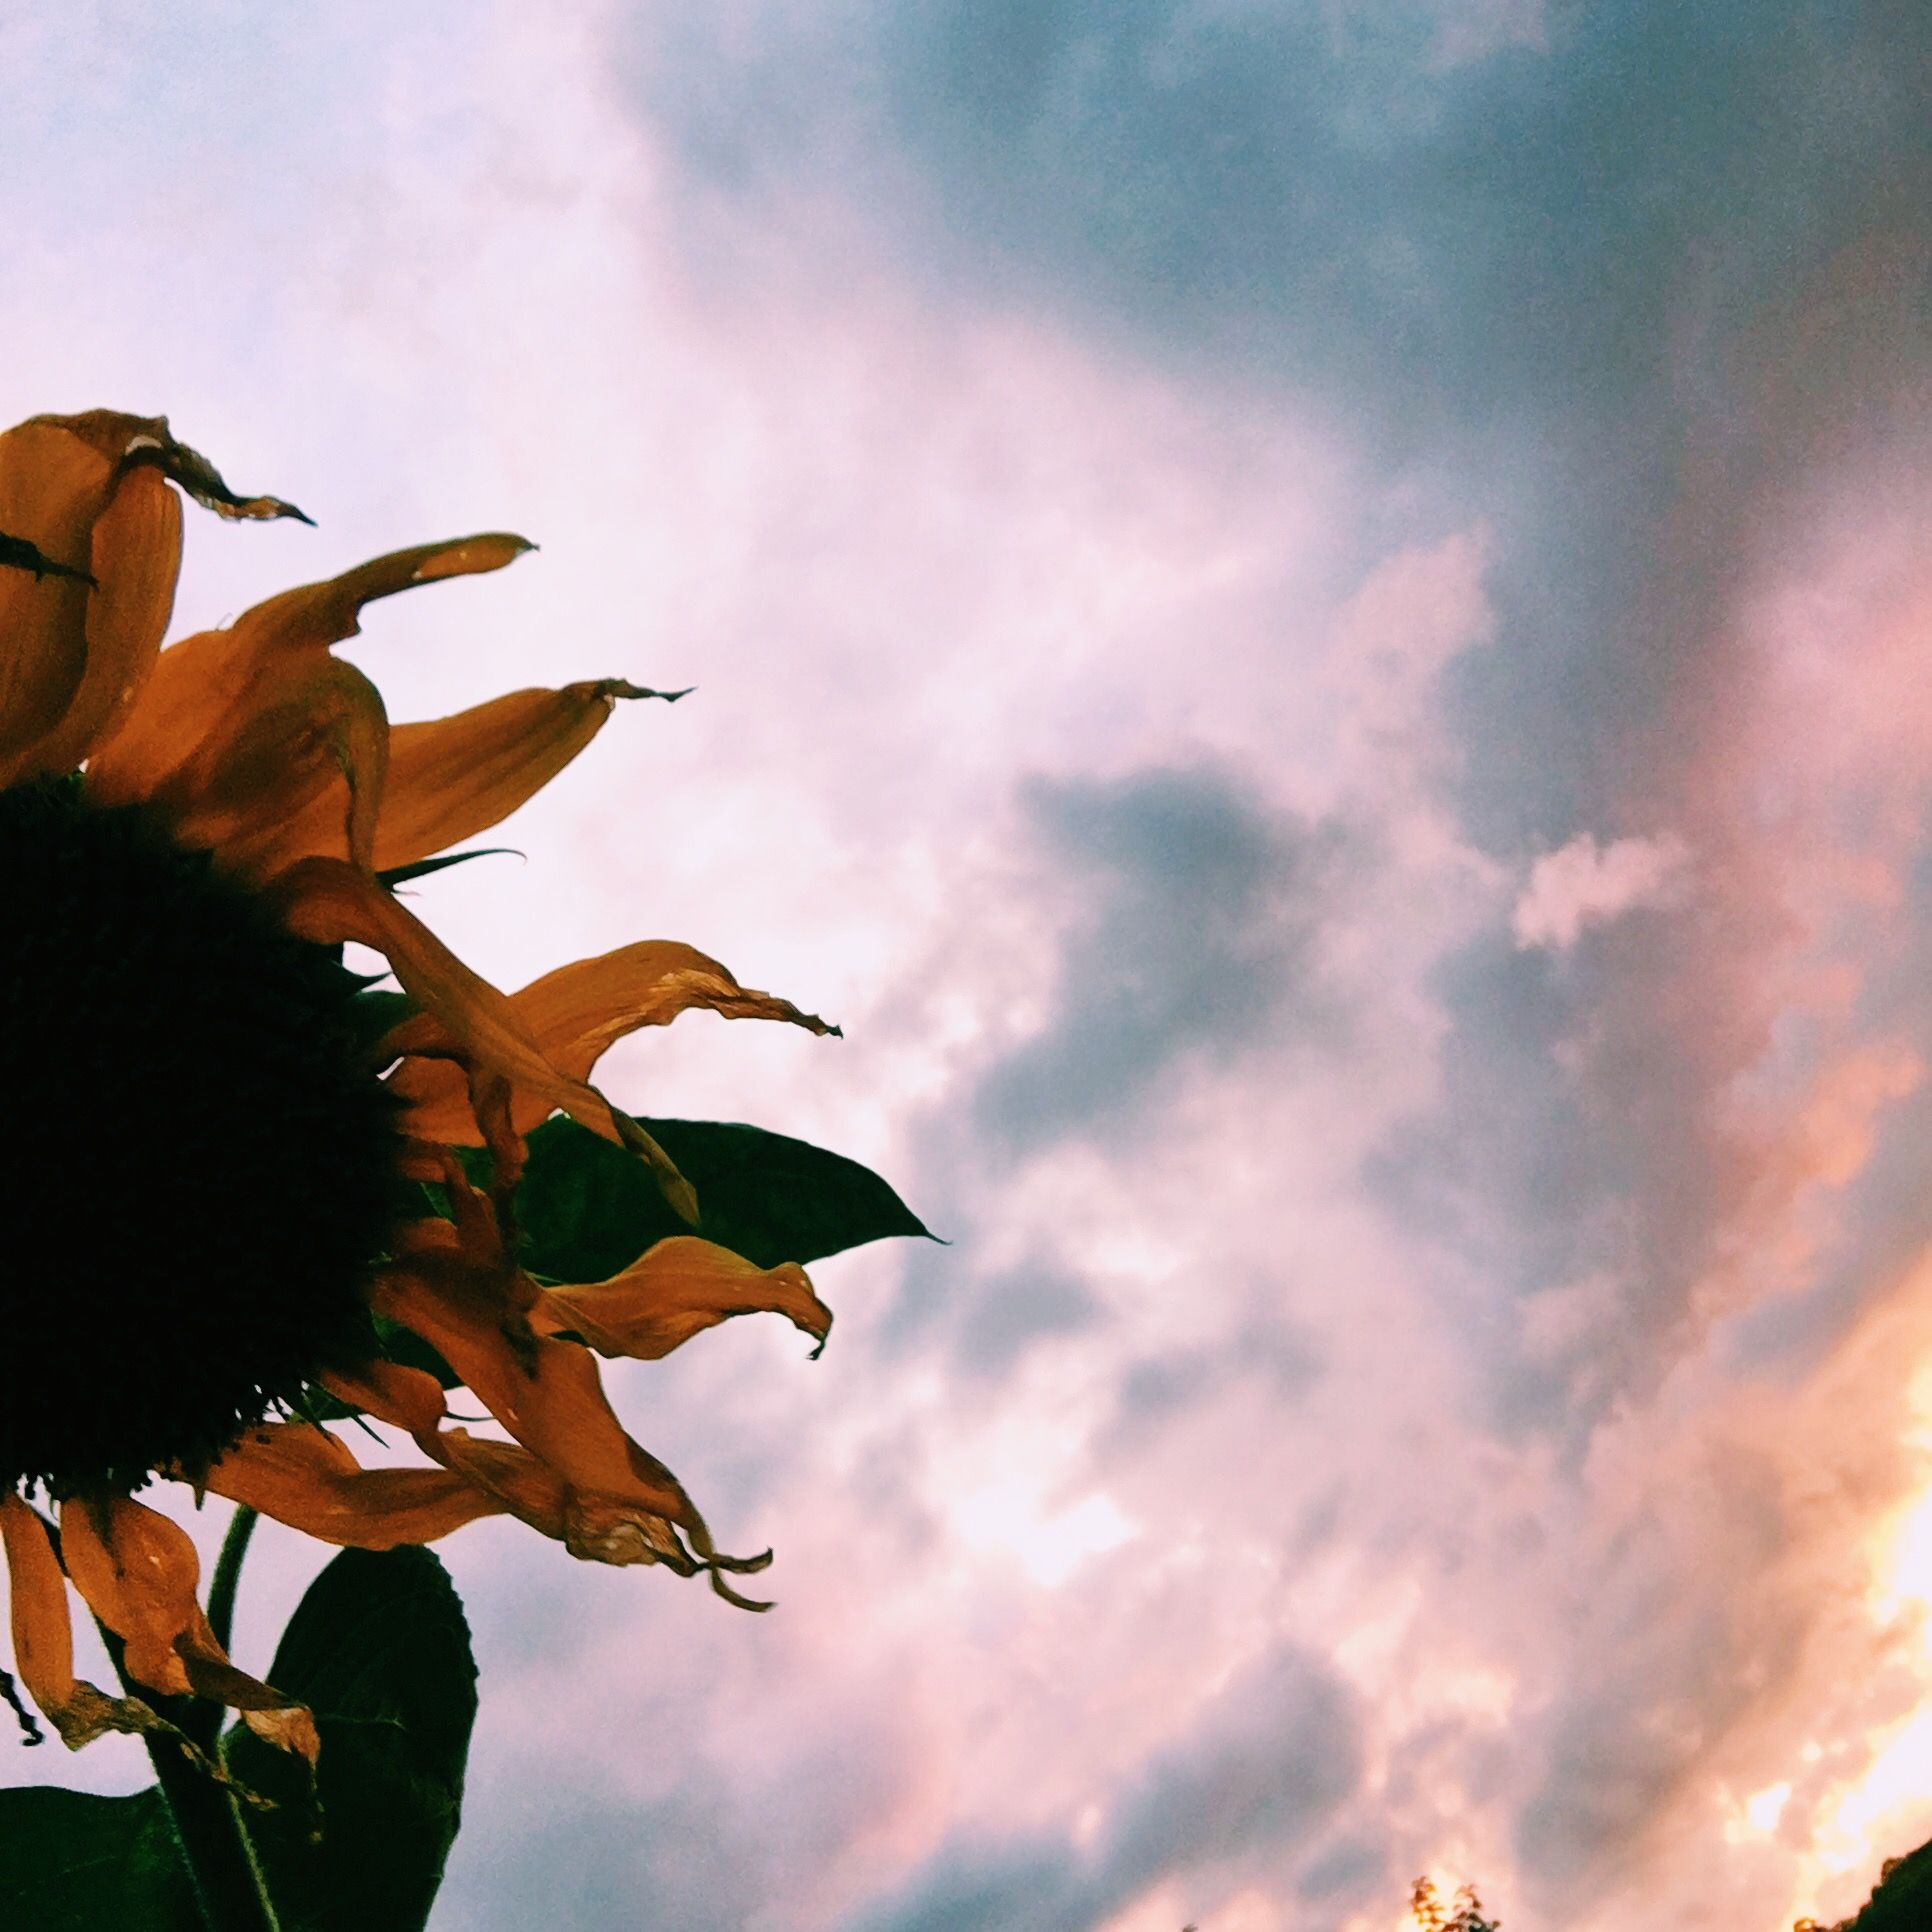 Sunflower Sunset Pink Pastel Aesthetic Tumblr Photography Photo Wilted Petals Pastel Aesthetic Tumblr Photography Sunflower Sunset